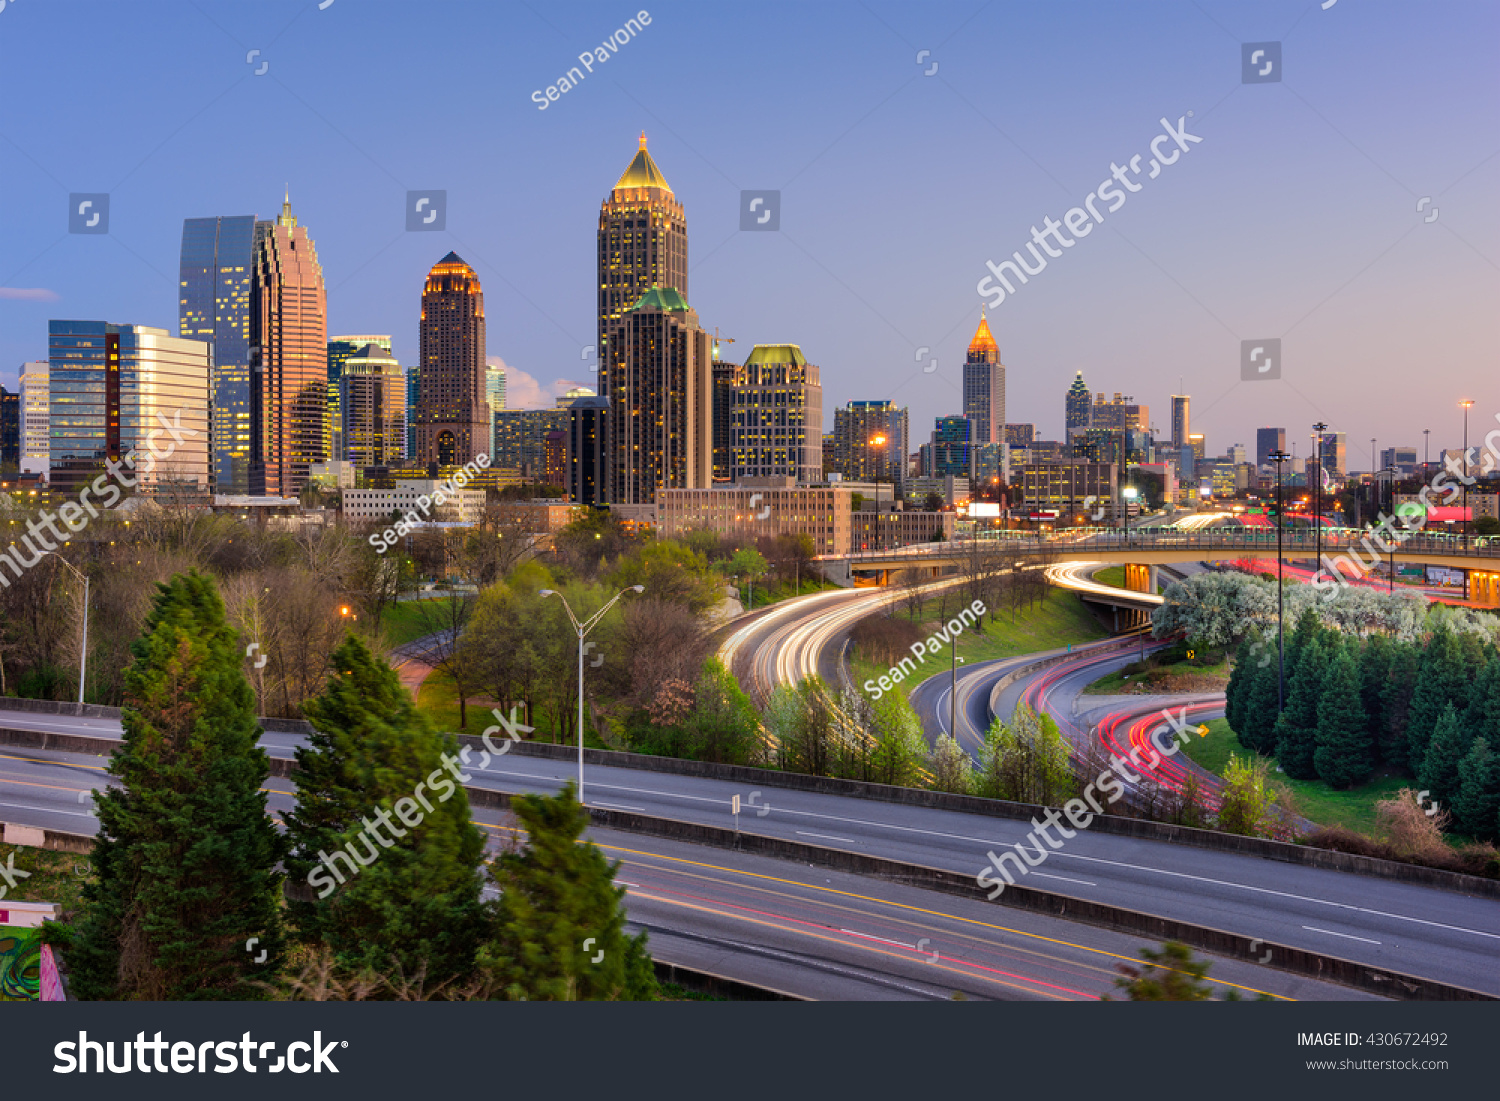 atlanta georgia usa downtown skyline stock photo 430672492 shutterstock. Black Bedroom Furniture Sets. Home Design Ideas